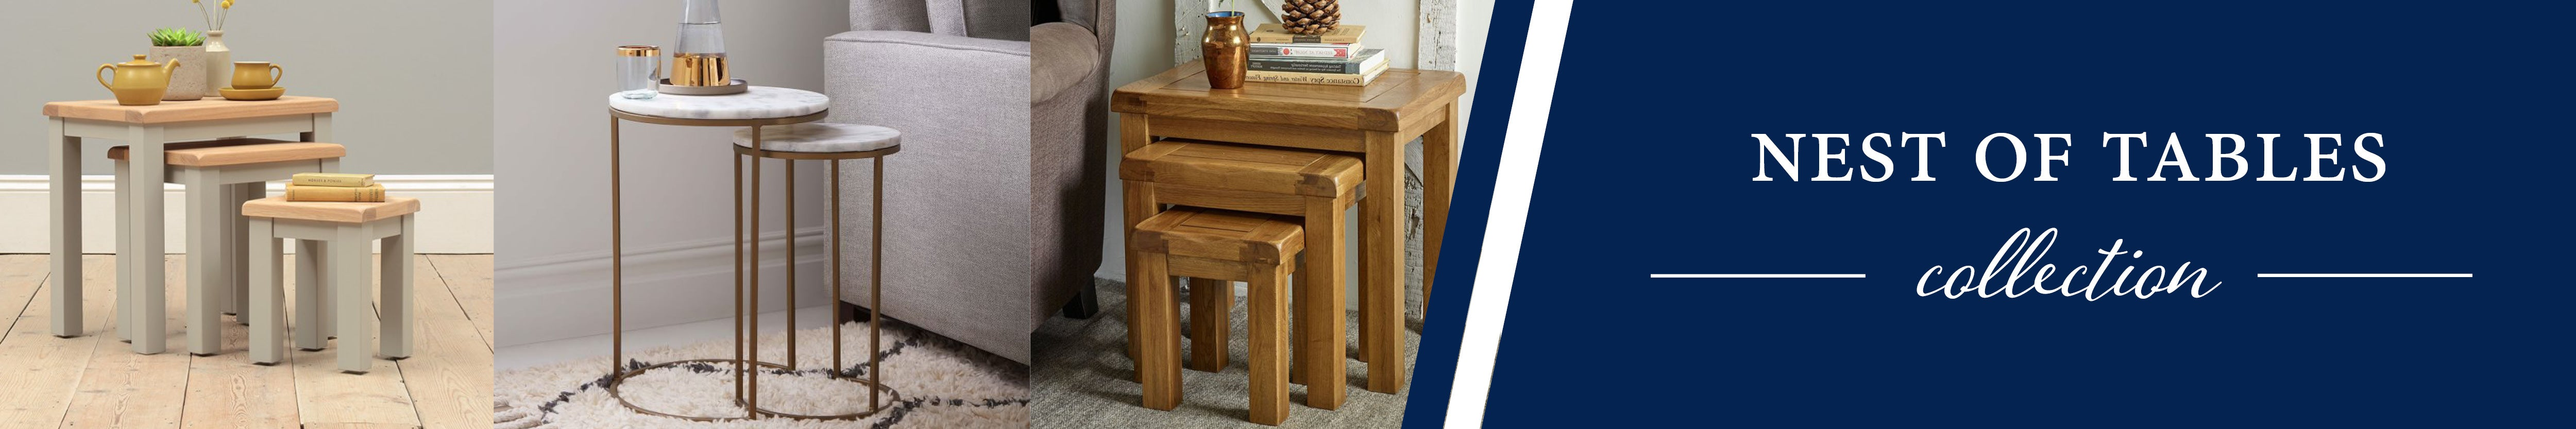 HomePlus Furniture | Nest of Tables Collection